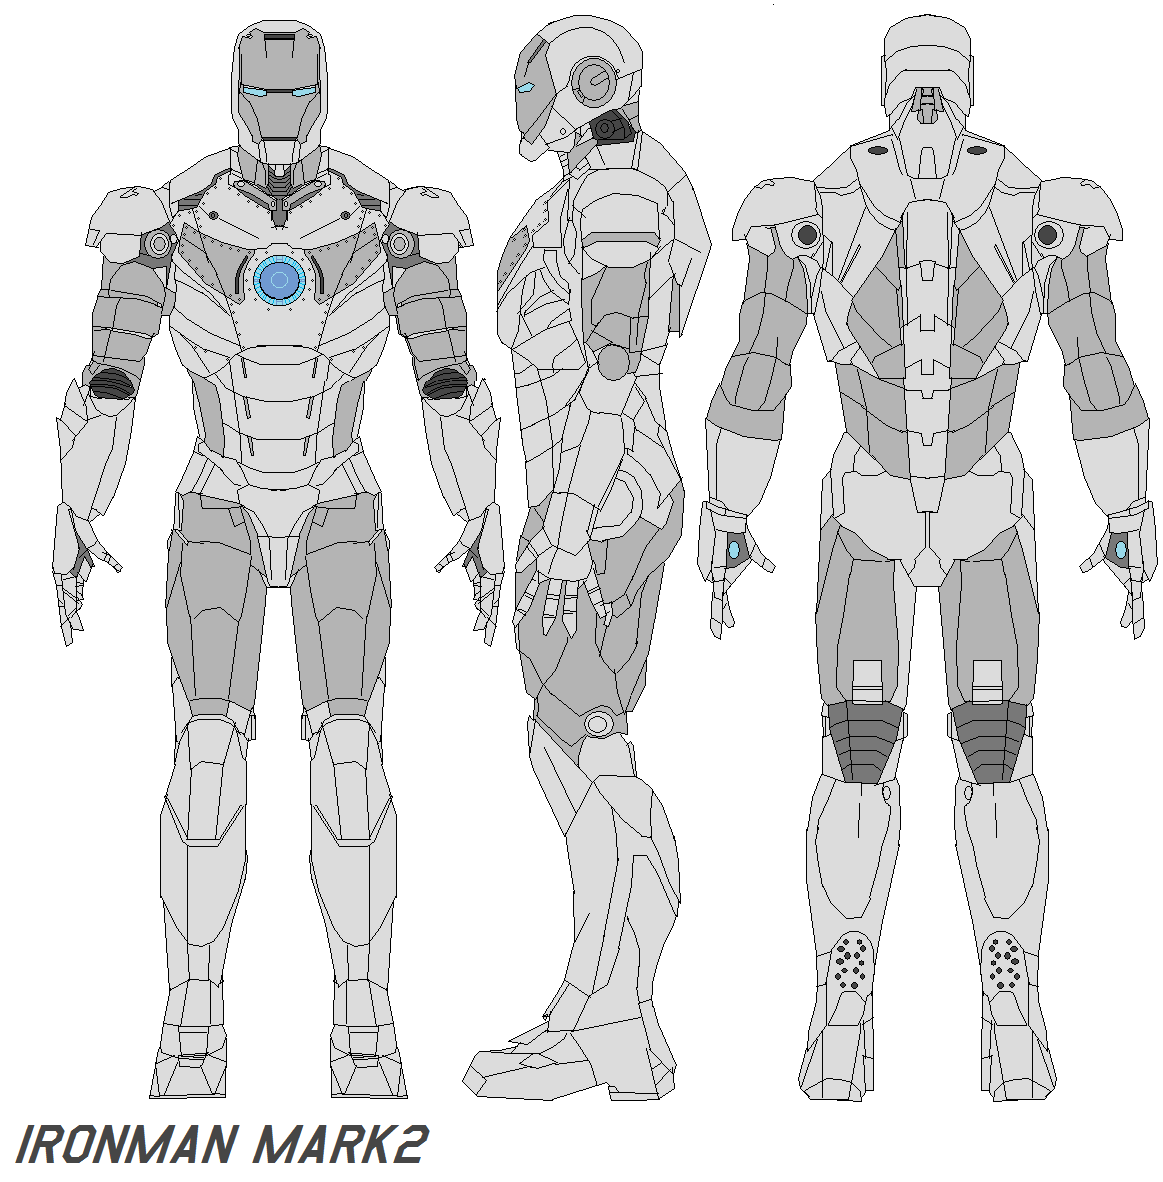 ironman mark 2 armor by bagera3005 ironman mark 2 armor by bagera3005